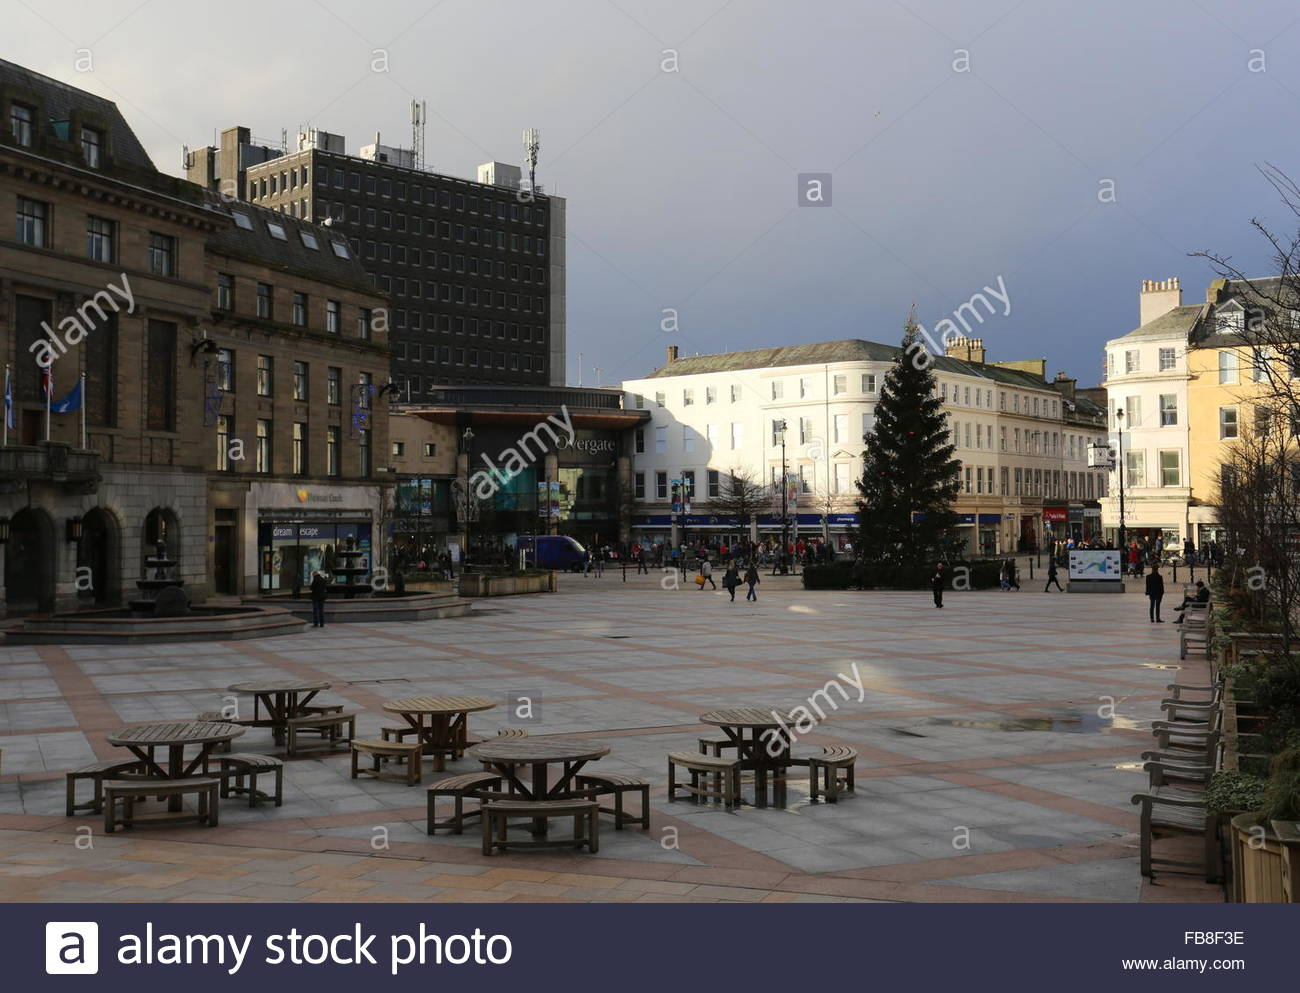 City Square, Overgate shopping centre and Christmas tree Dundee Scotland  December 2015 - Stock Image